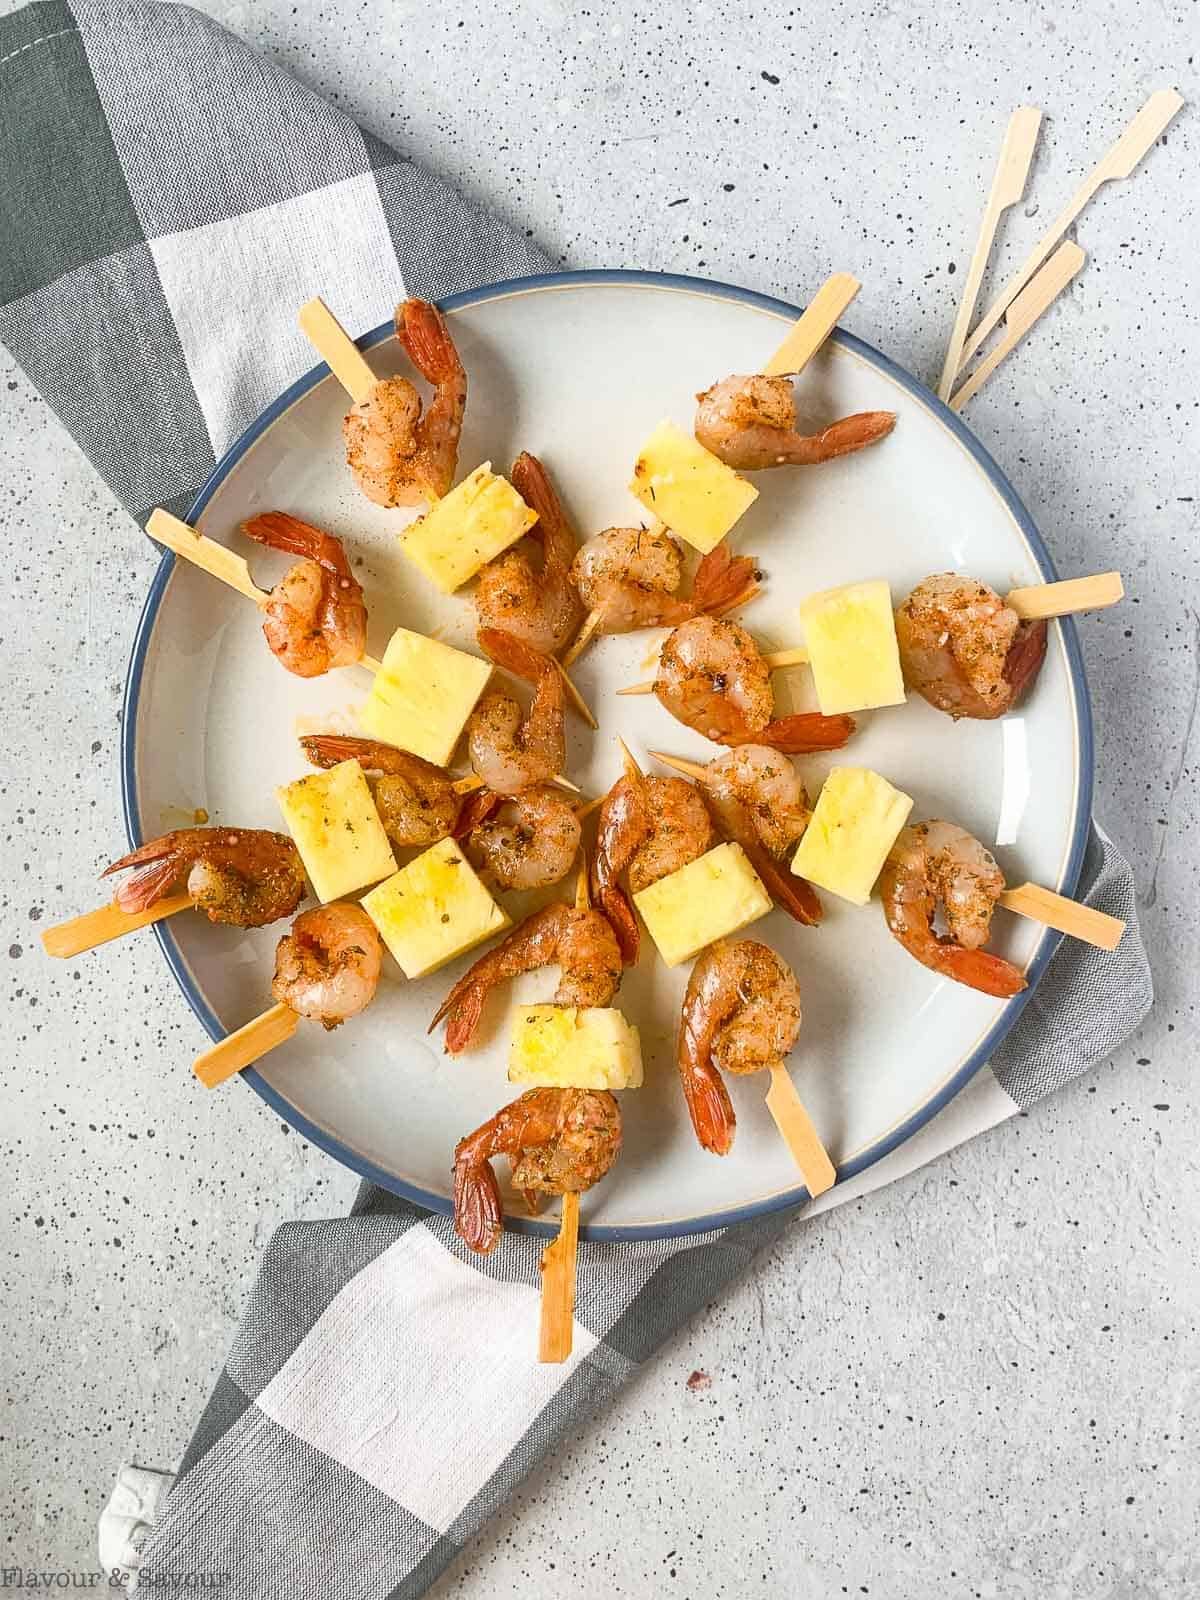 Cajun Prawn or Shrimp Kabobs with pineapple ready to grill